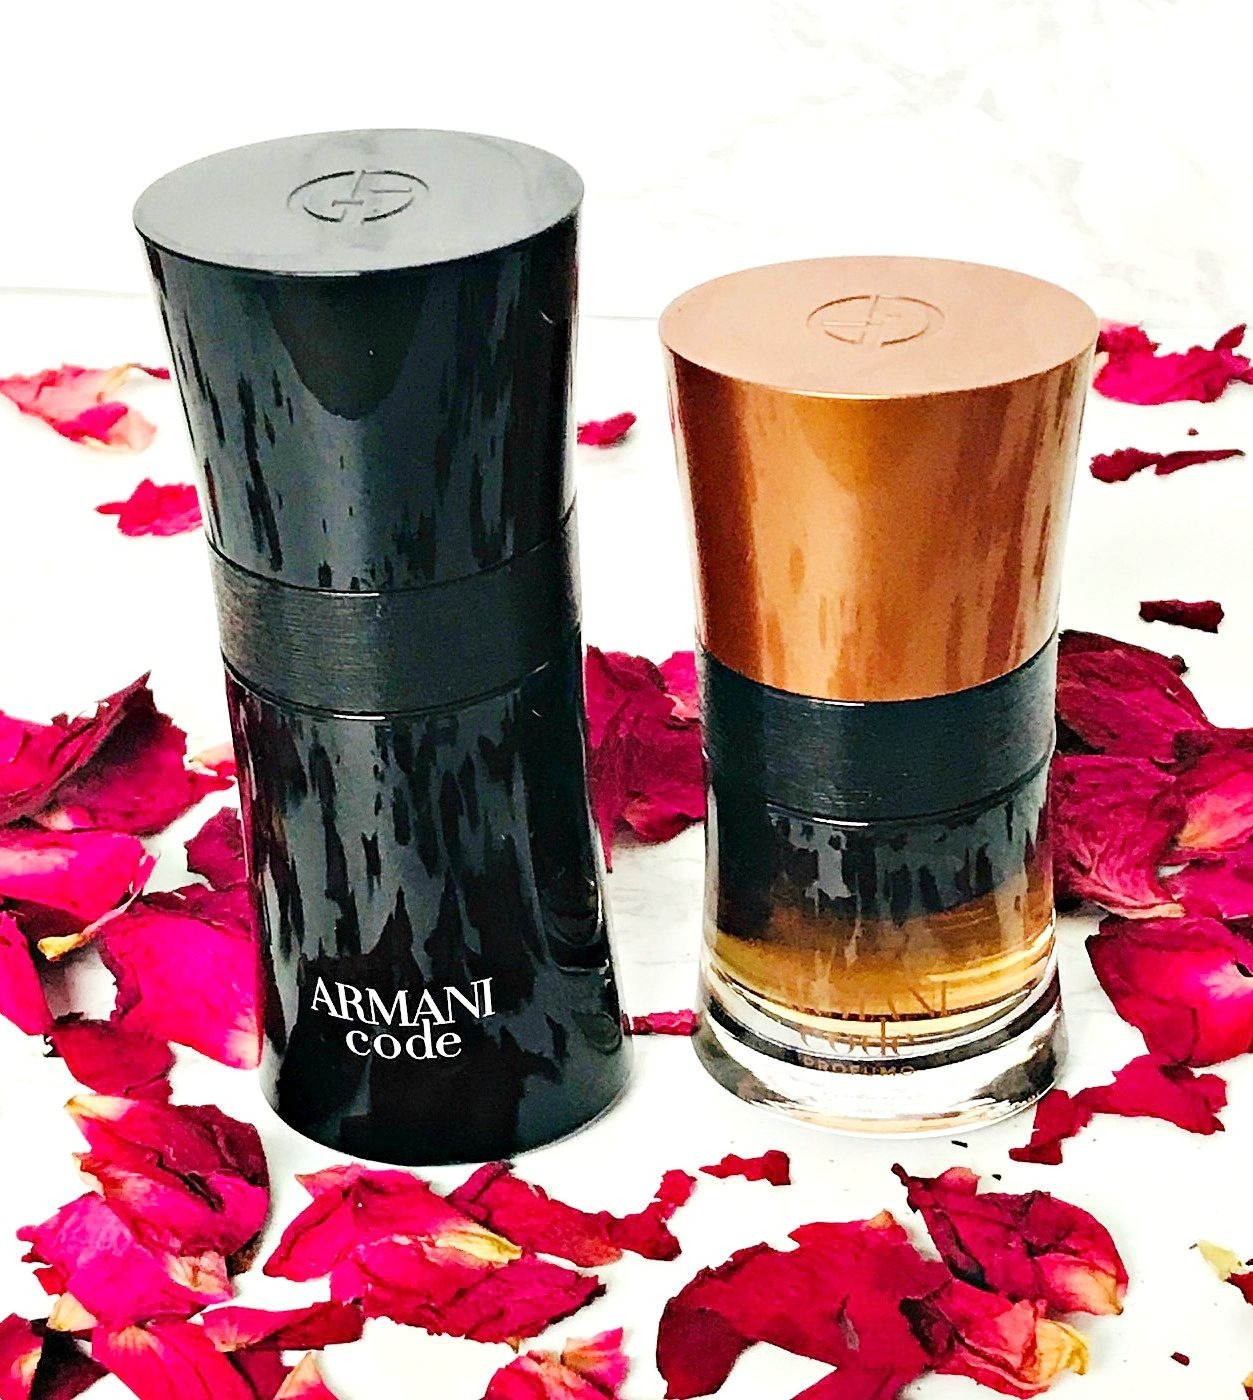 Armani Code Homme Review